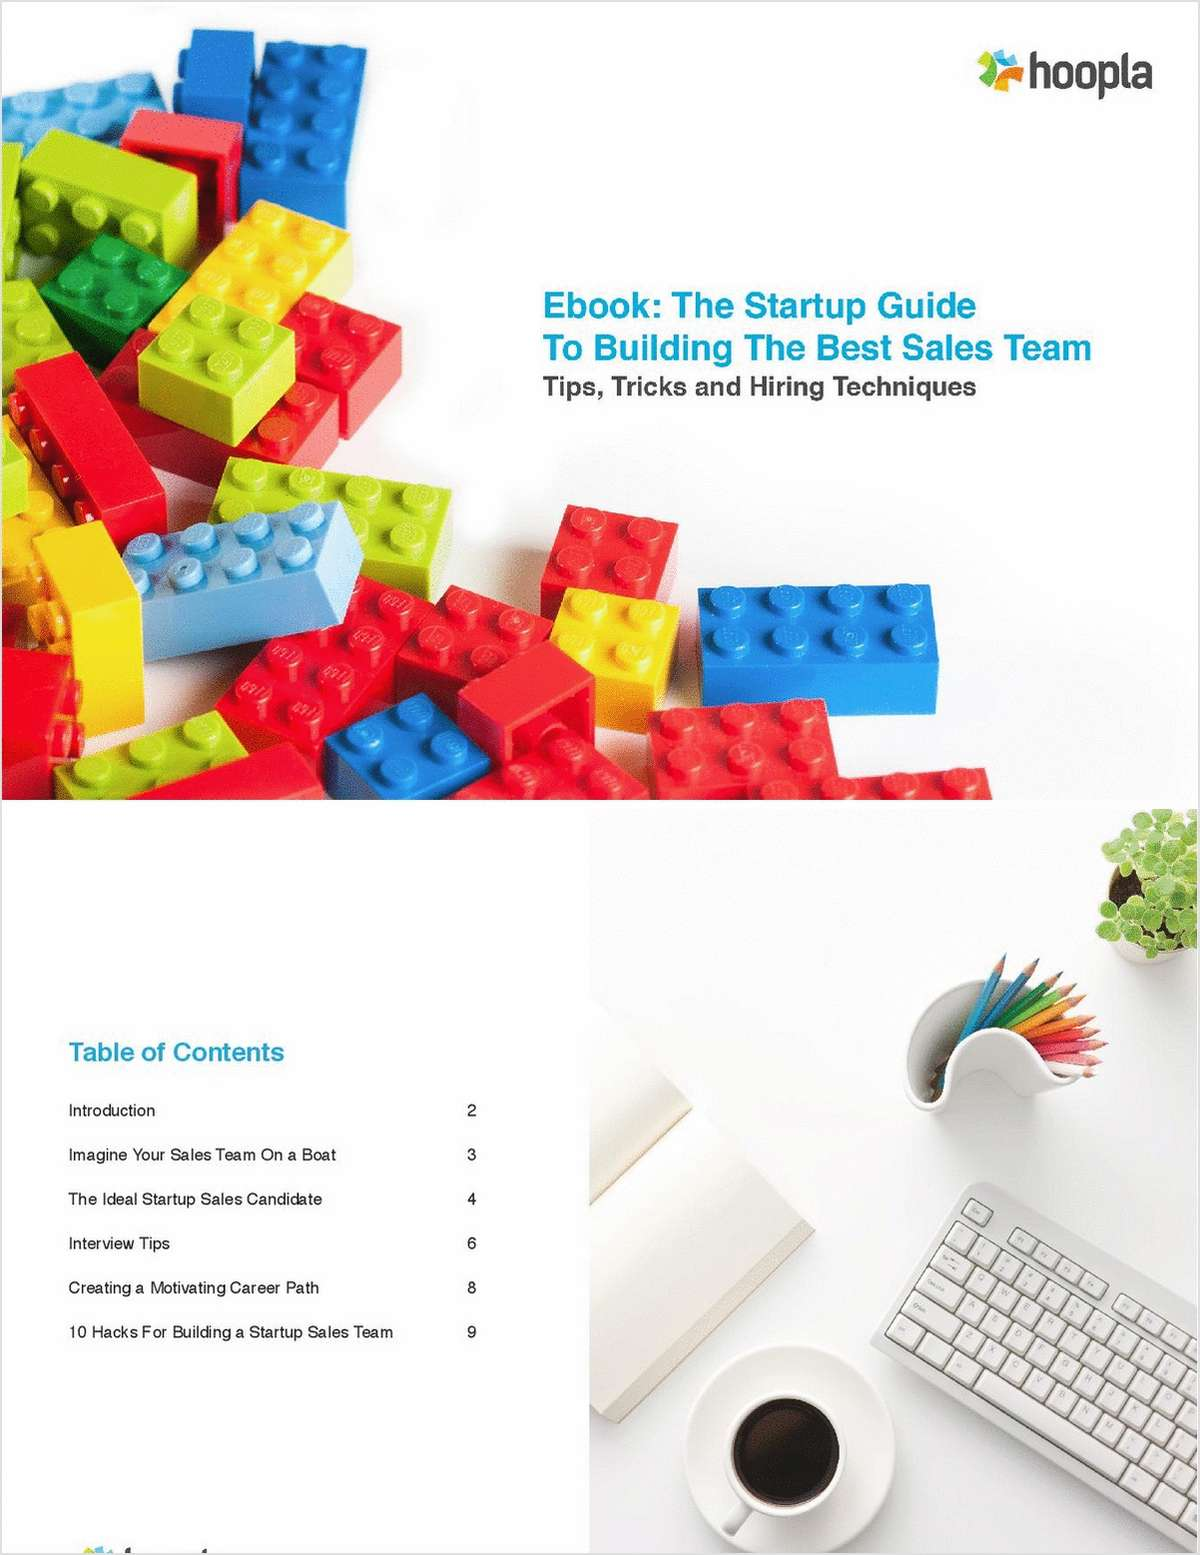 The Startup Guide To Building The Best Sales Team: Tips, Tricks and Hiring Techniques